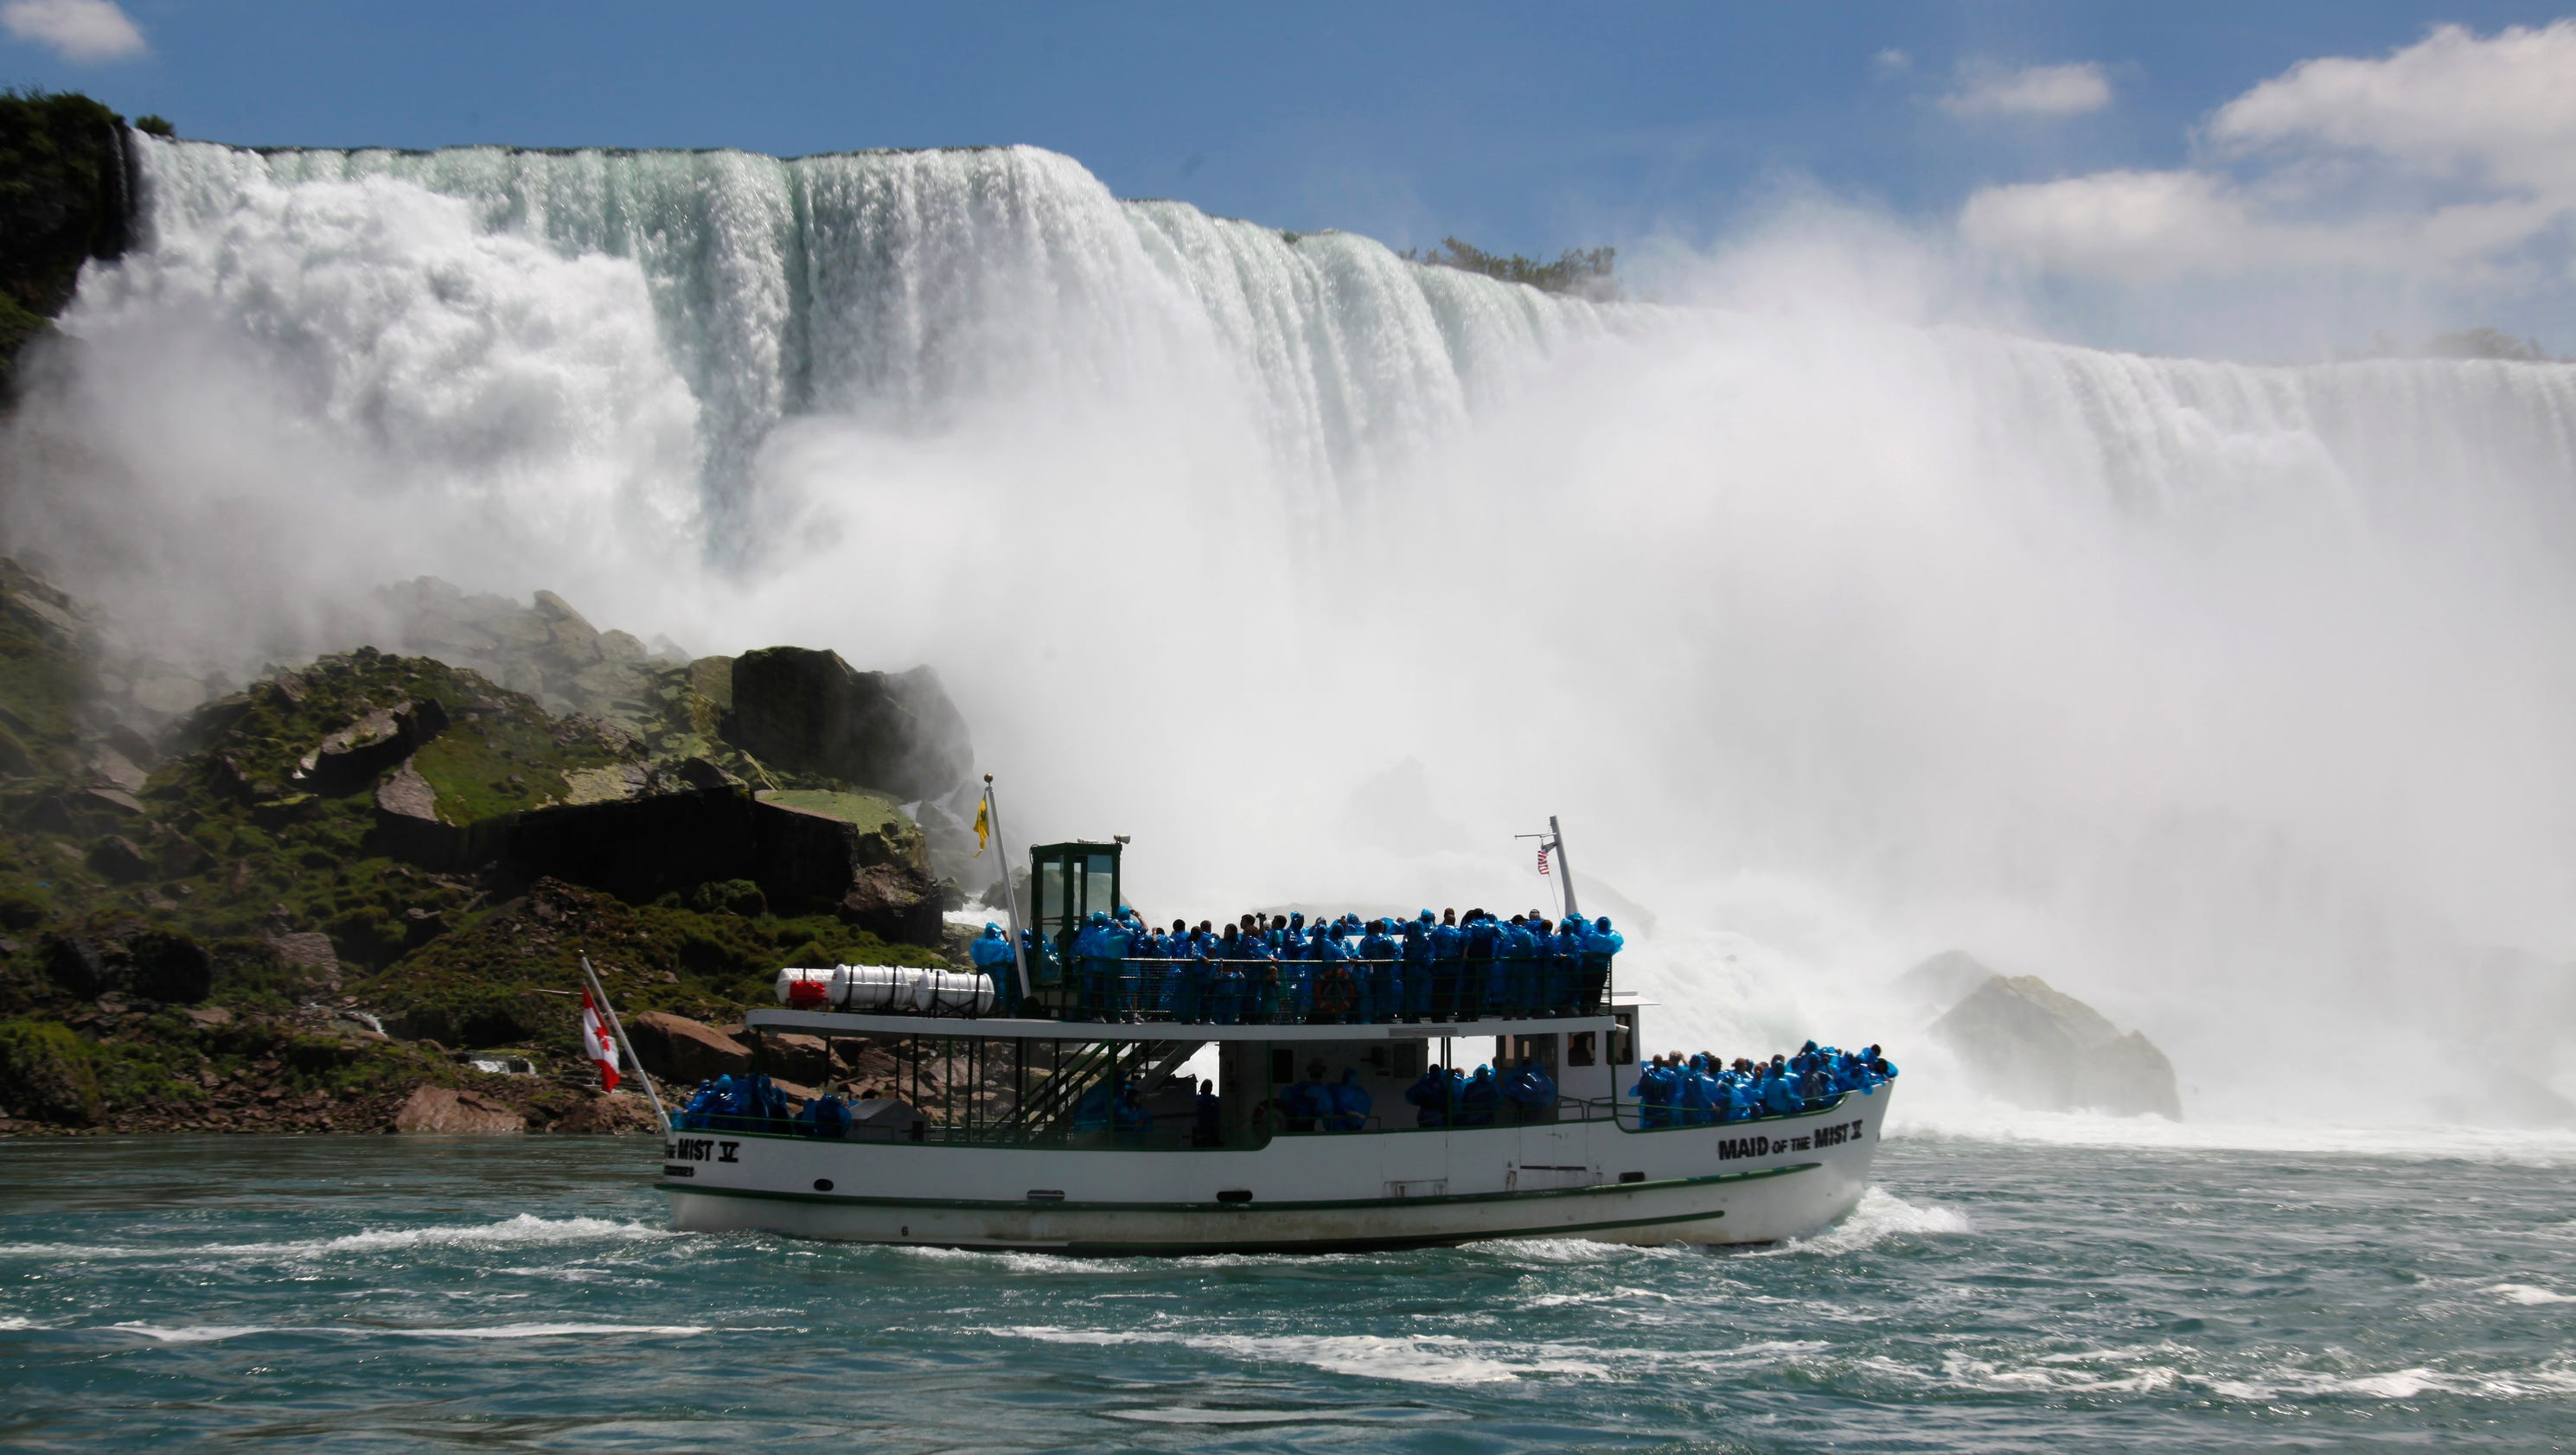 Hook up niagara falls